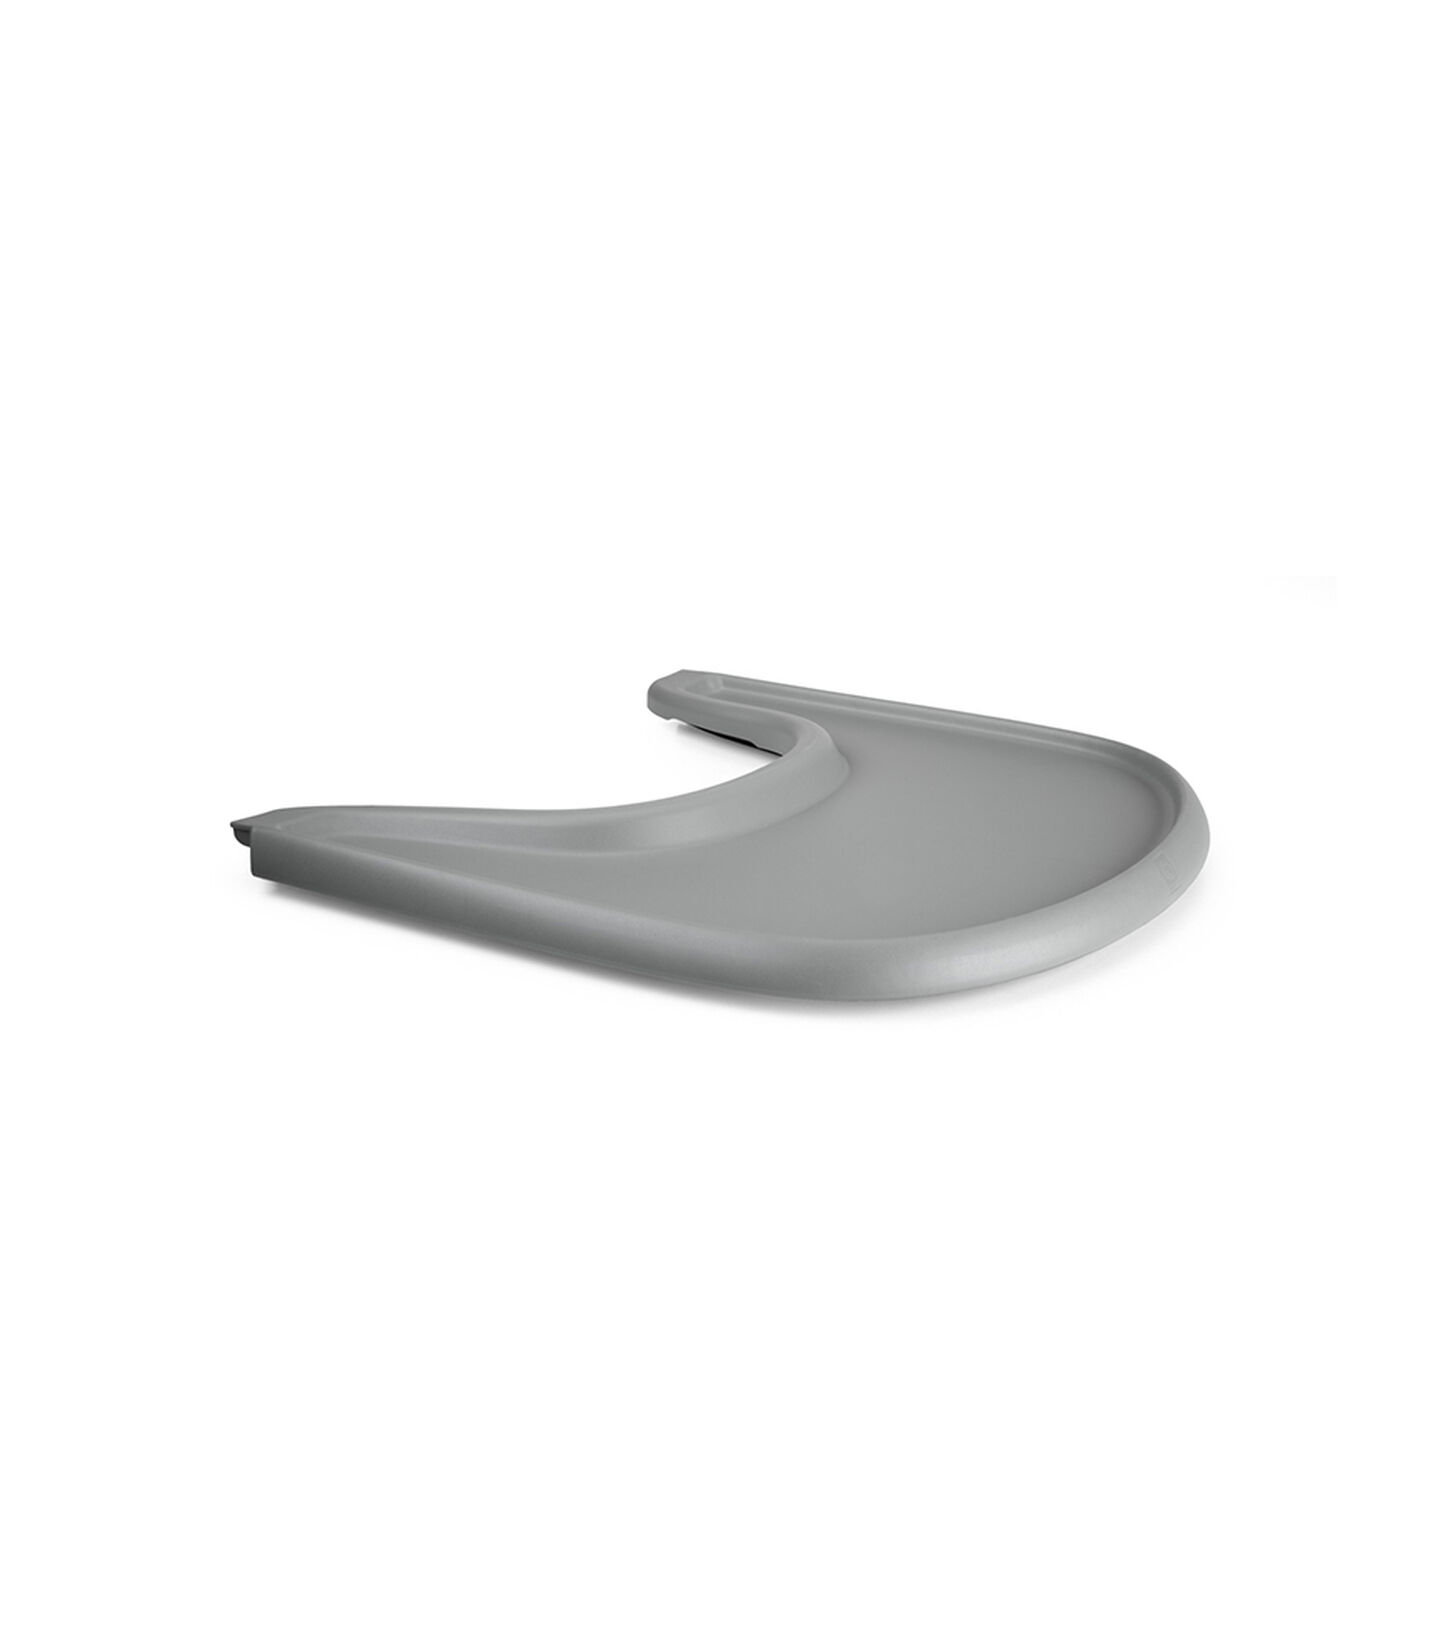 Stokke® Tray in Storm Grey, Storm Grey, mainview view 1